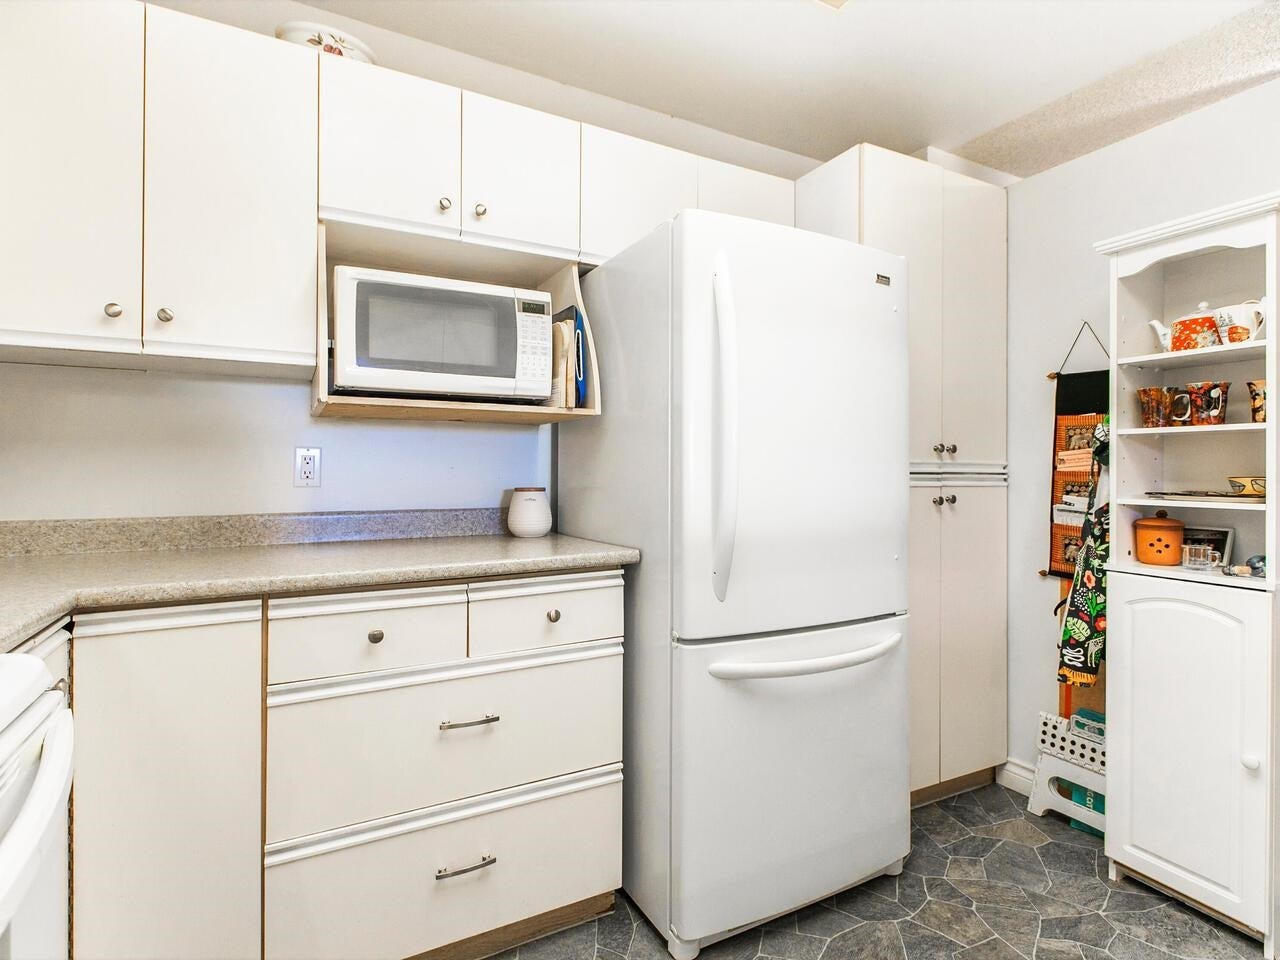 104 2800 CHESTERFIELD AVENUE - Upper Lonsdale Apartment/Condo for sale, 2 Bedrooms (R2603260) - #13